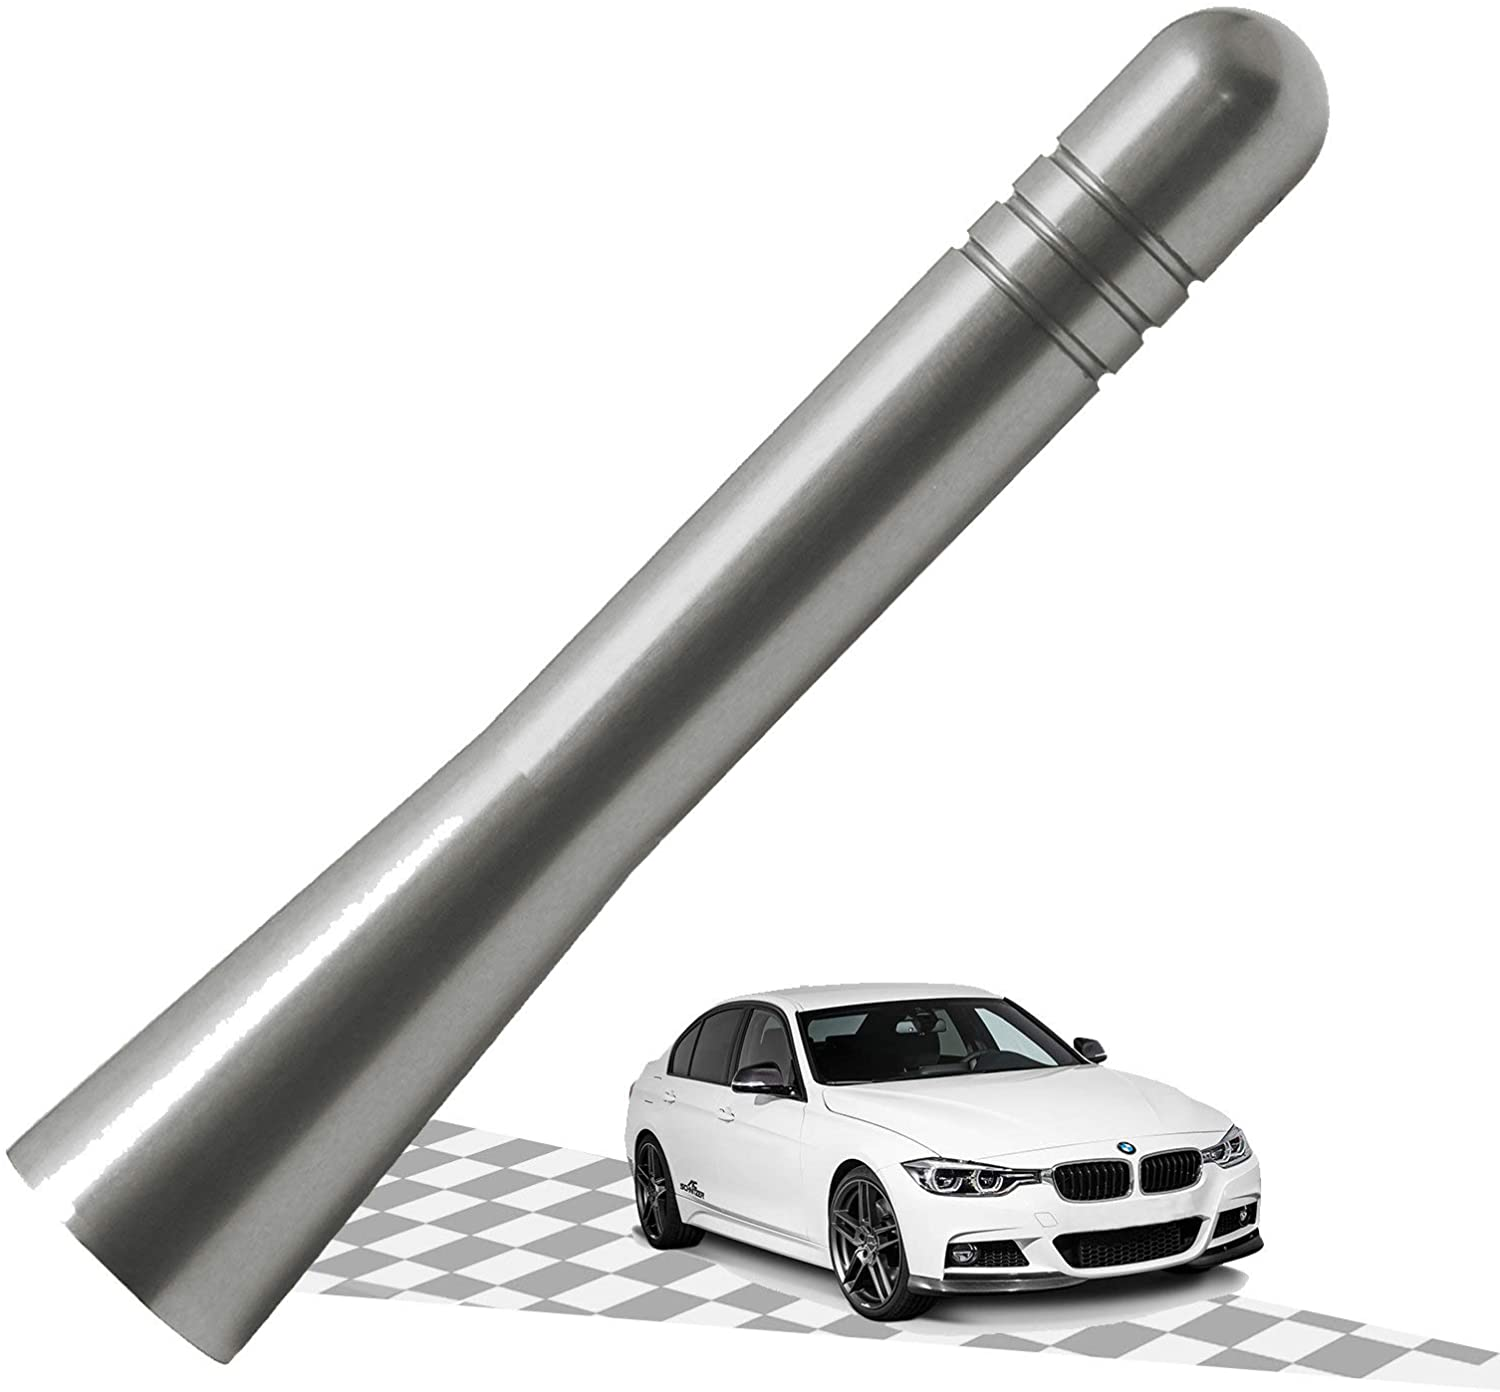 Elitezip Antenna Compatible with BMW Z3 and Z4 1995-2016 | Optimized AM/FM Reception with Tough Material | 3.2 Inches - Silver Titanium